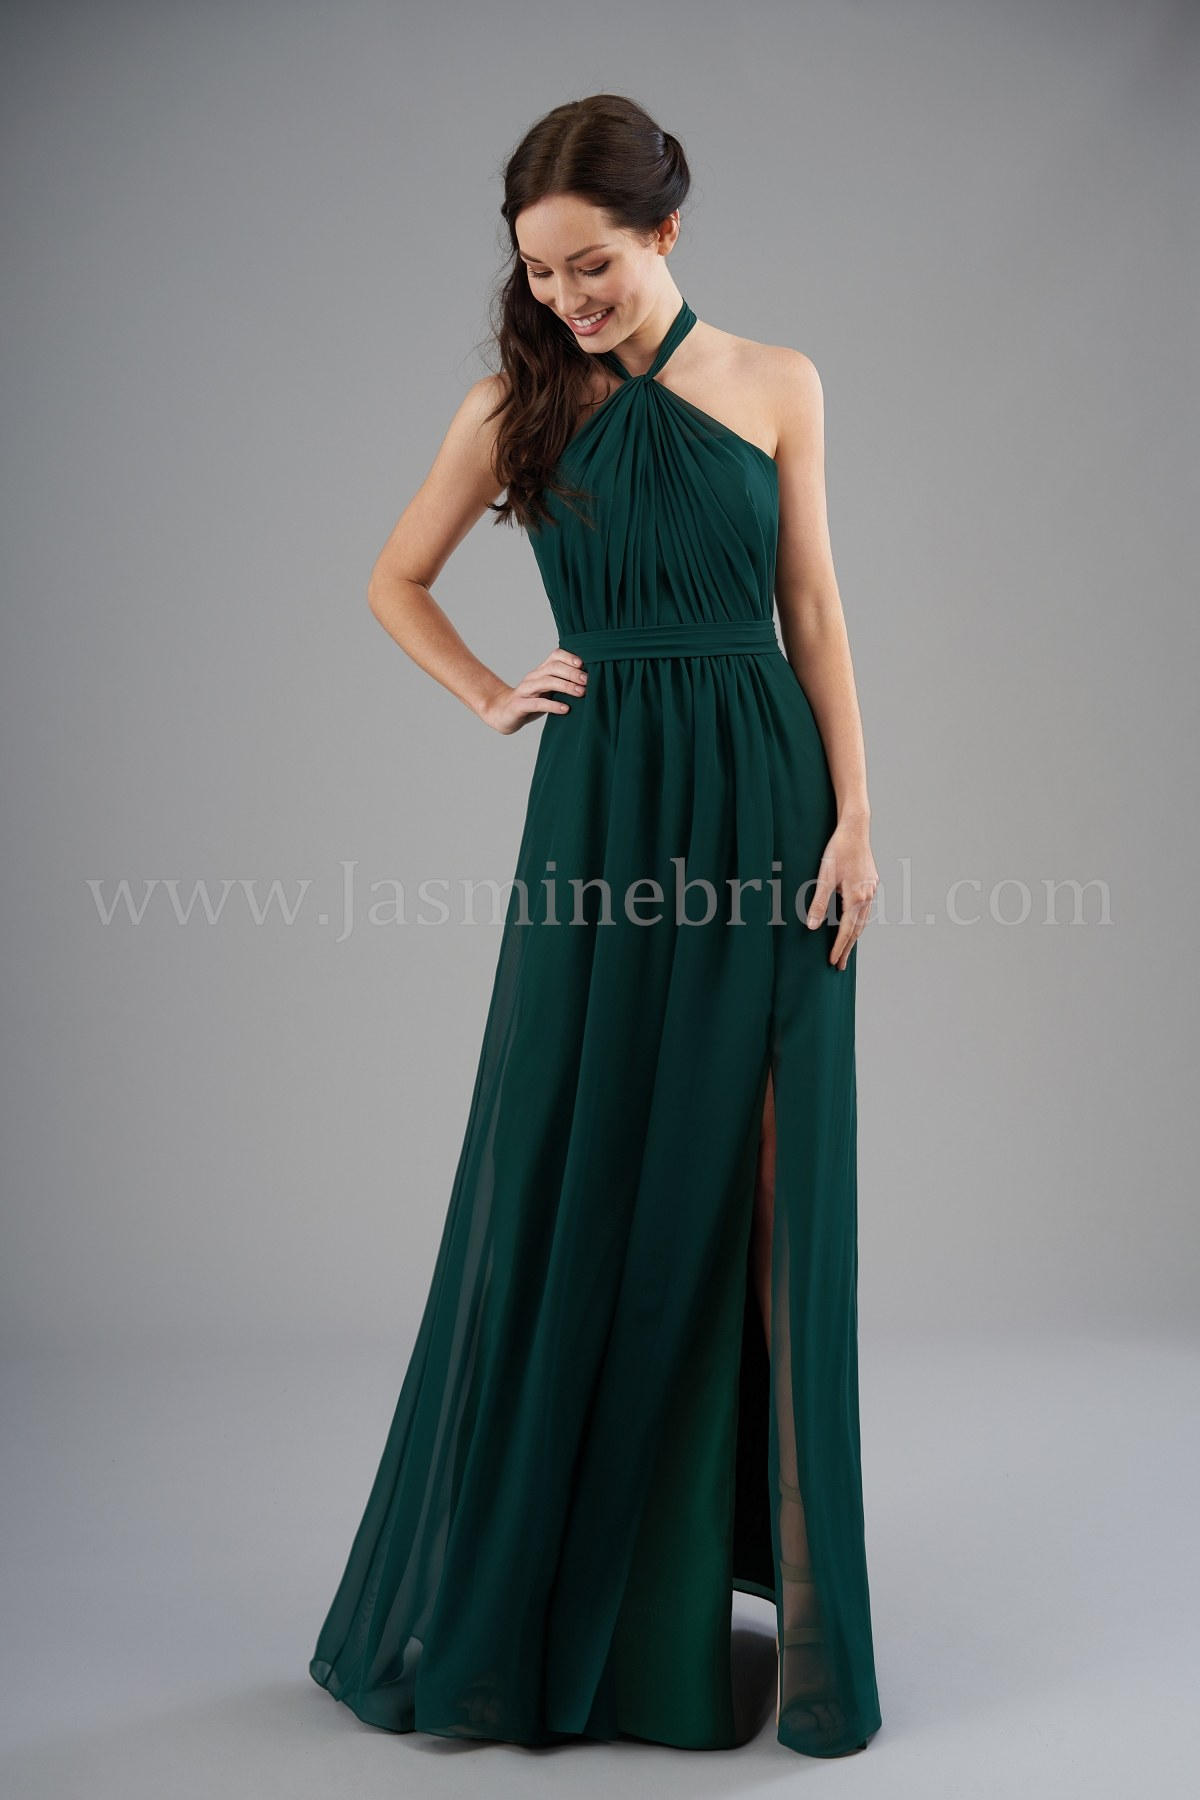 bridesmaid-dresses-B203051-F